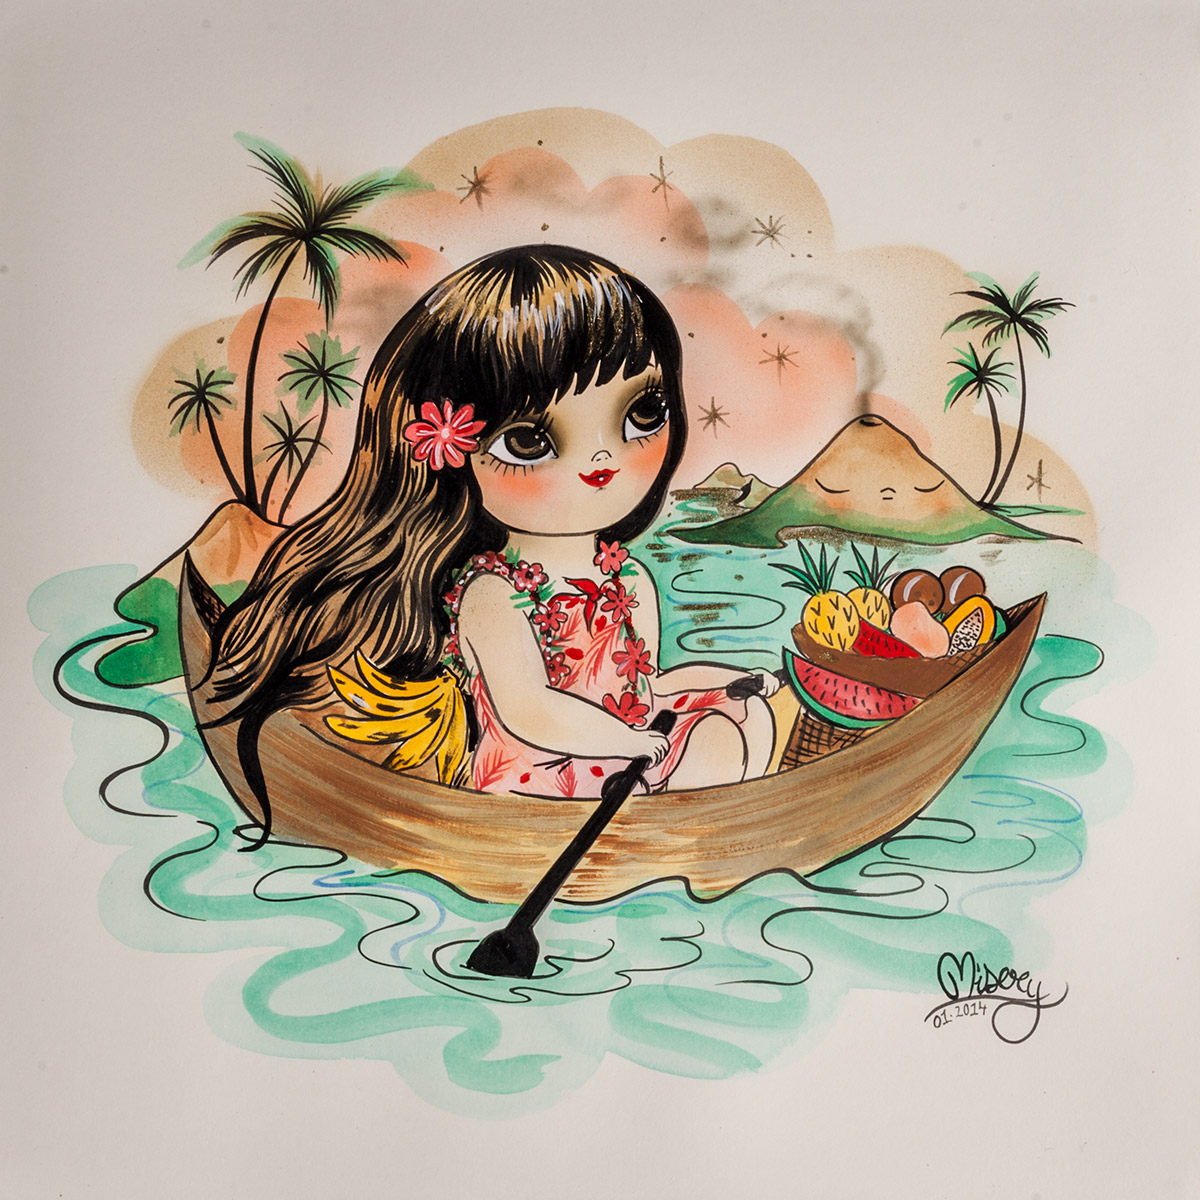 Misery-FloatingInGoldenBay.jpg